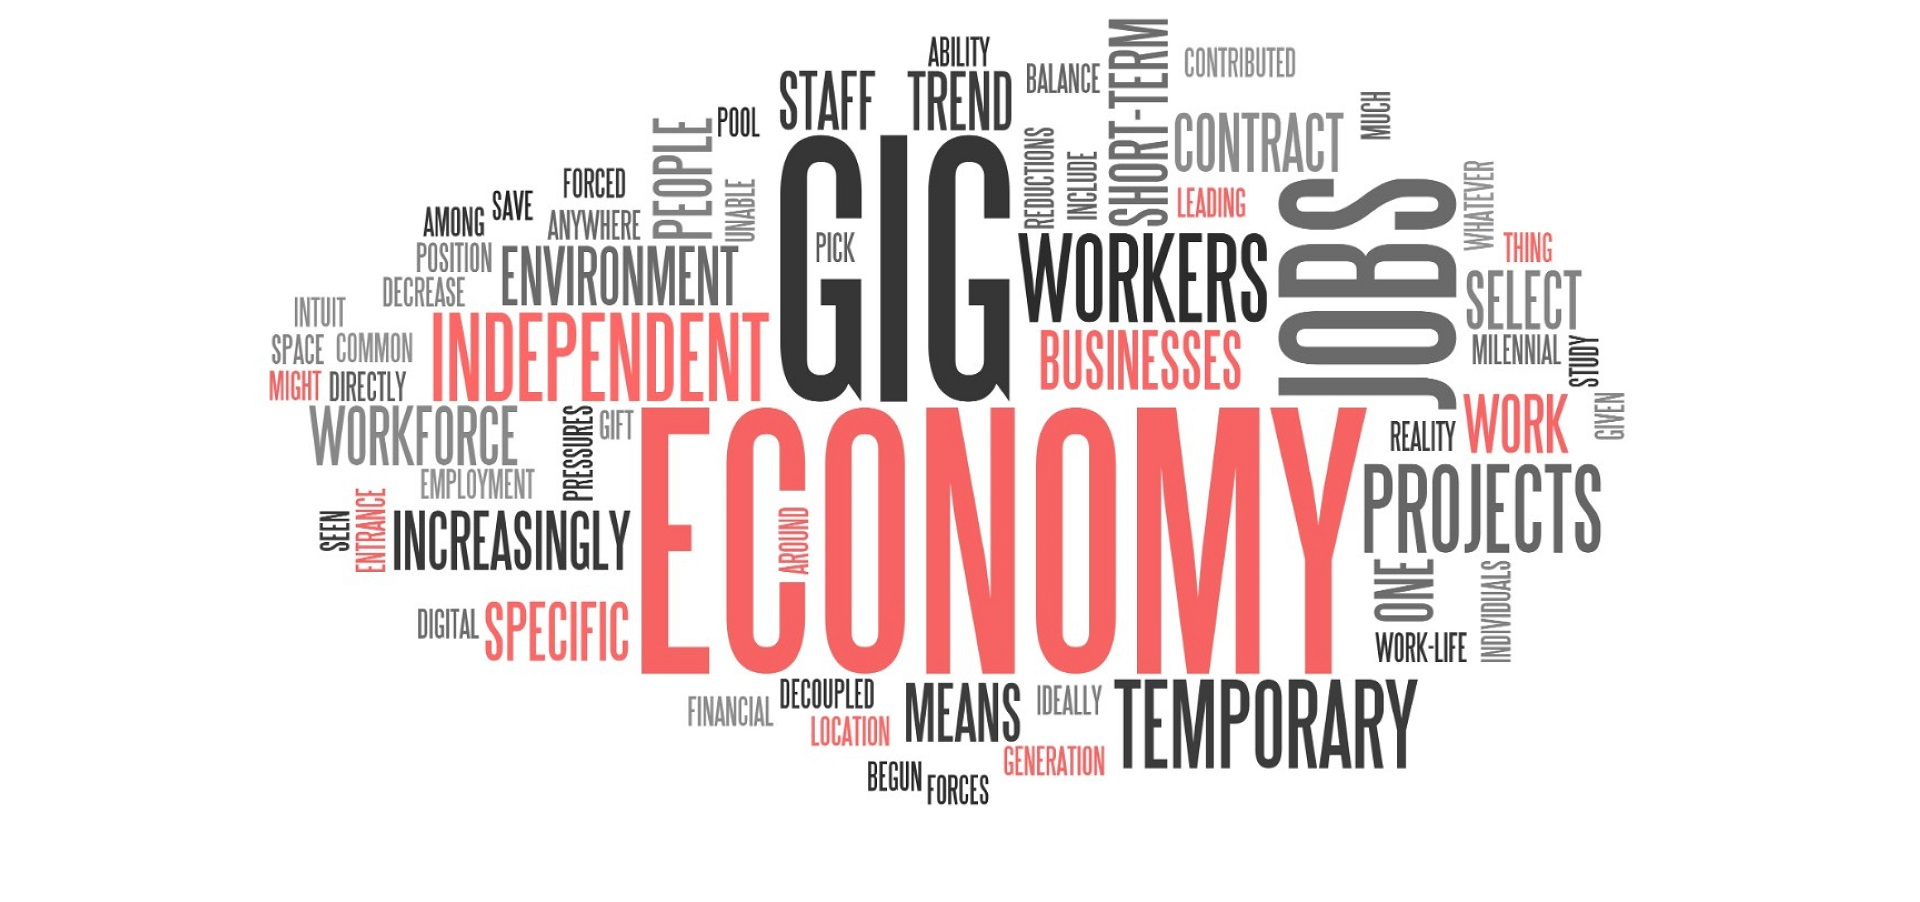 Gig economy: Is the way of Traditional jobs and Economy changing?